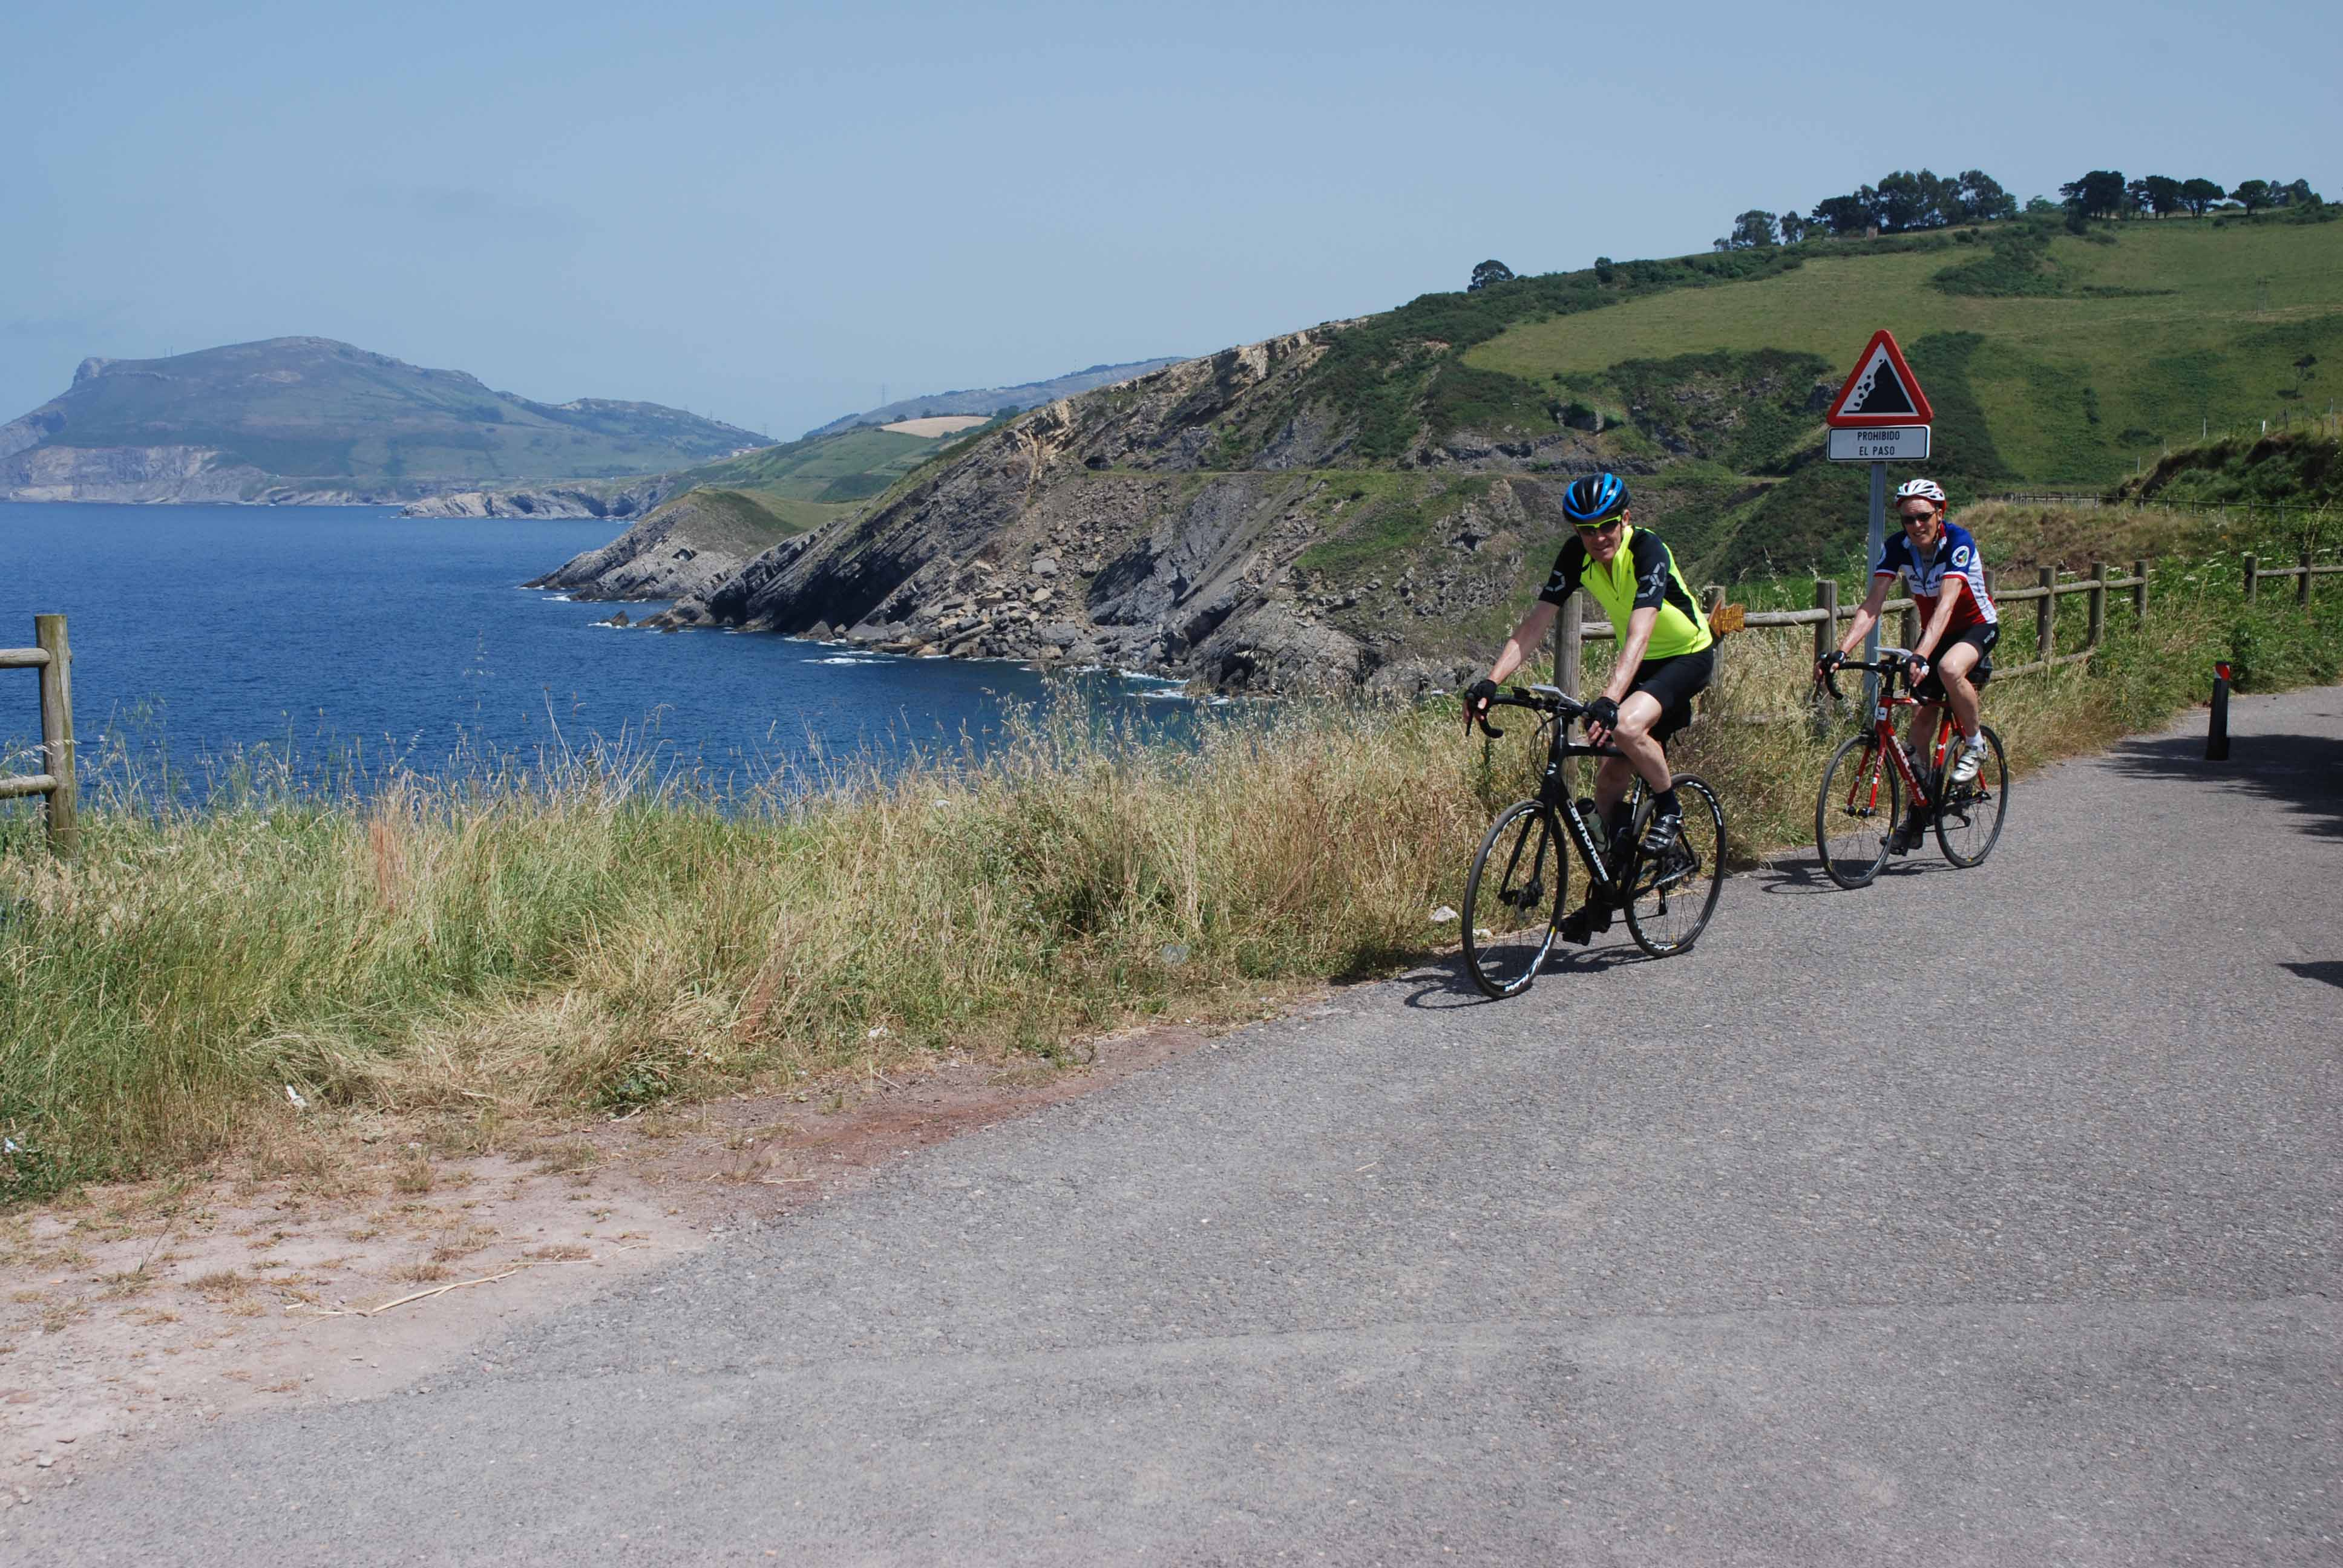 The coast in Spain; at this point our route follows the Camino de Santiago